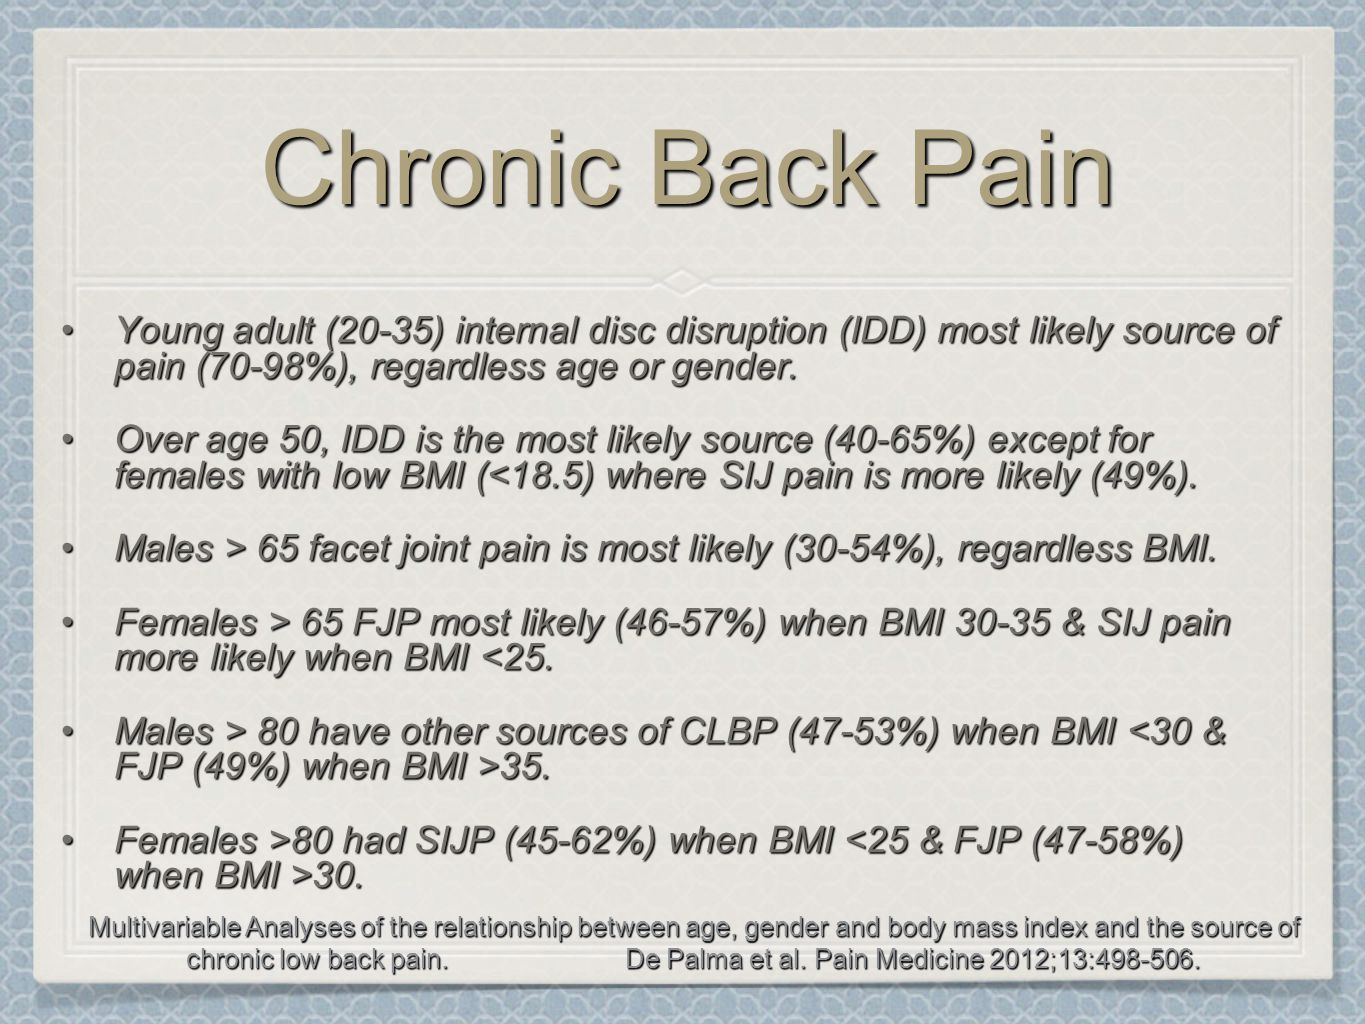 Chronic Back Pain Young adult (20-35) internal disc disruption (IDD) most likely source of pain (70-98%), regardless age or gender.